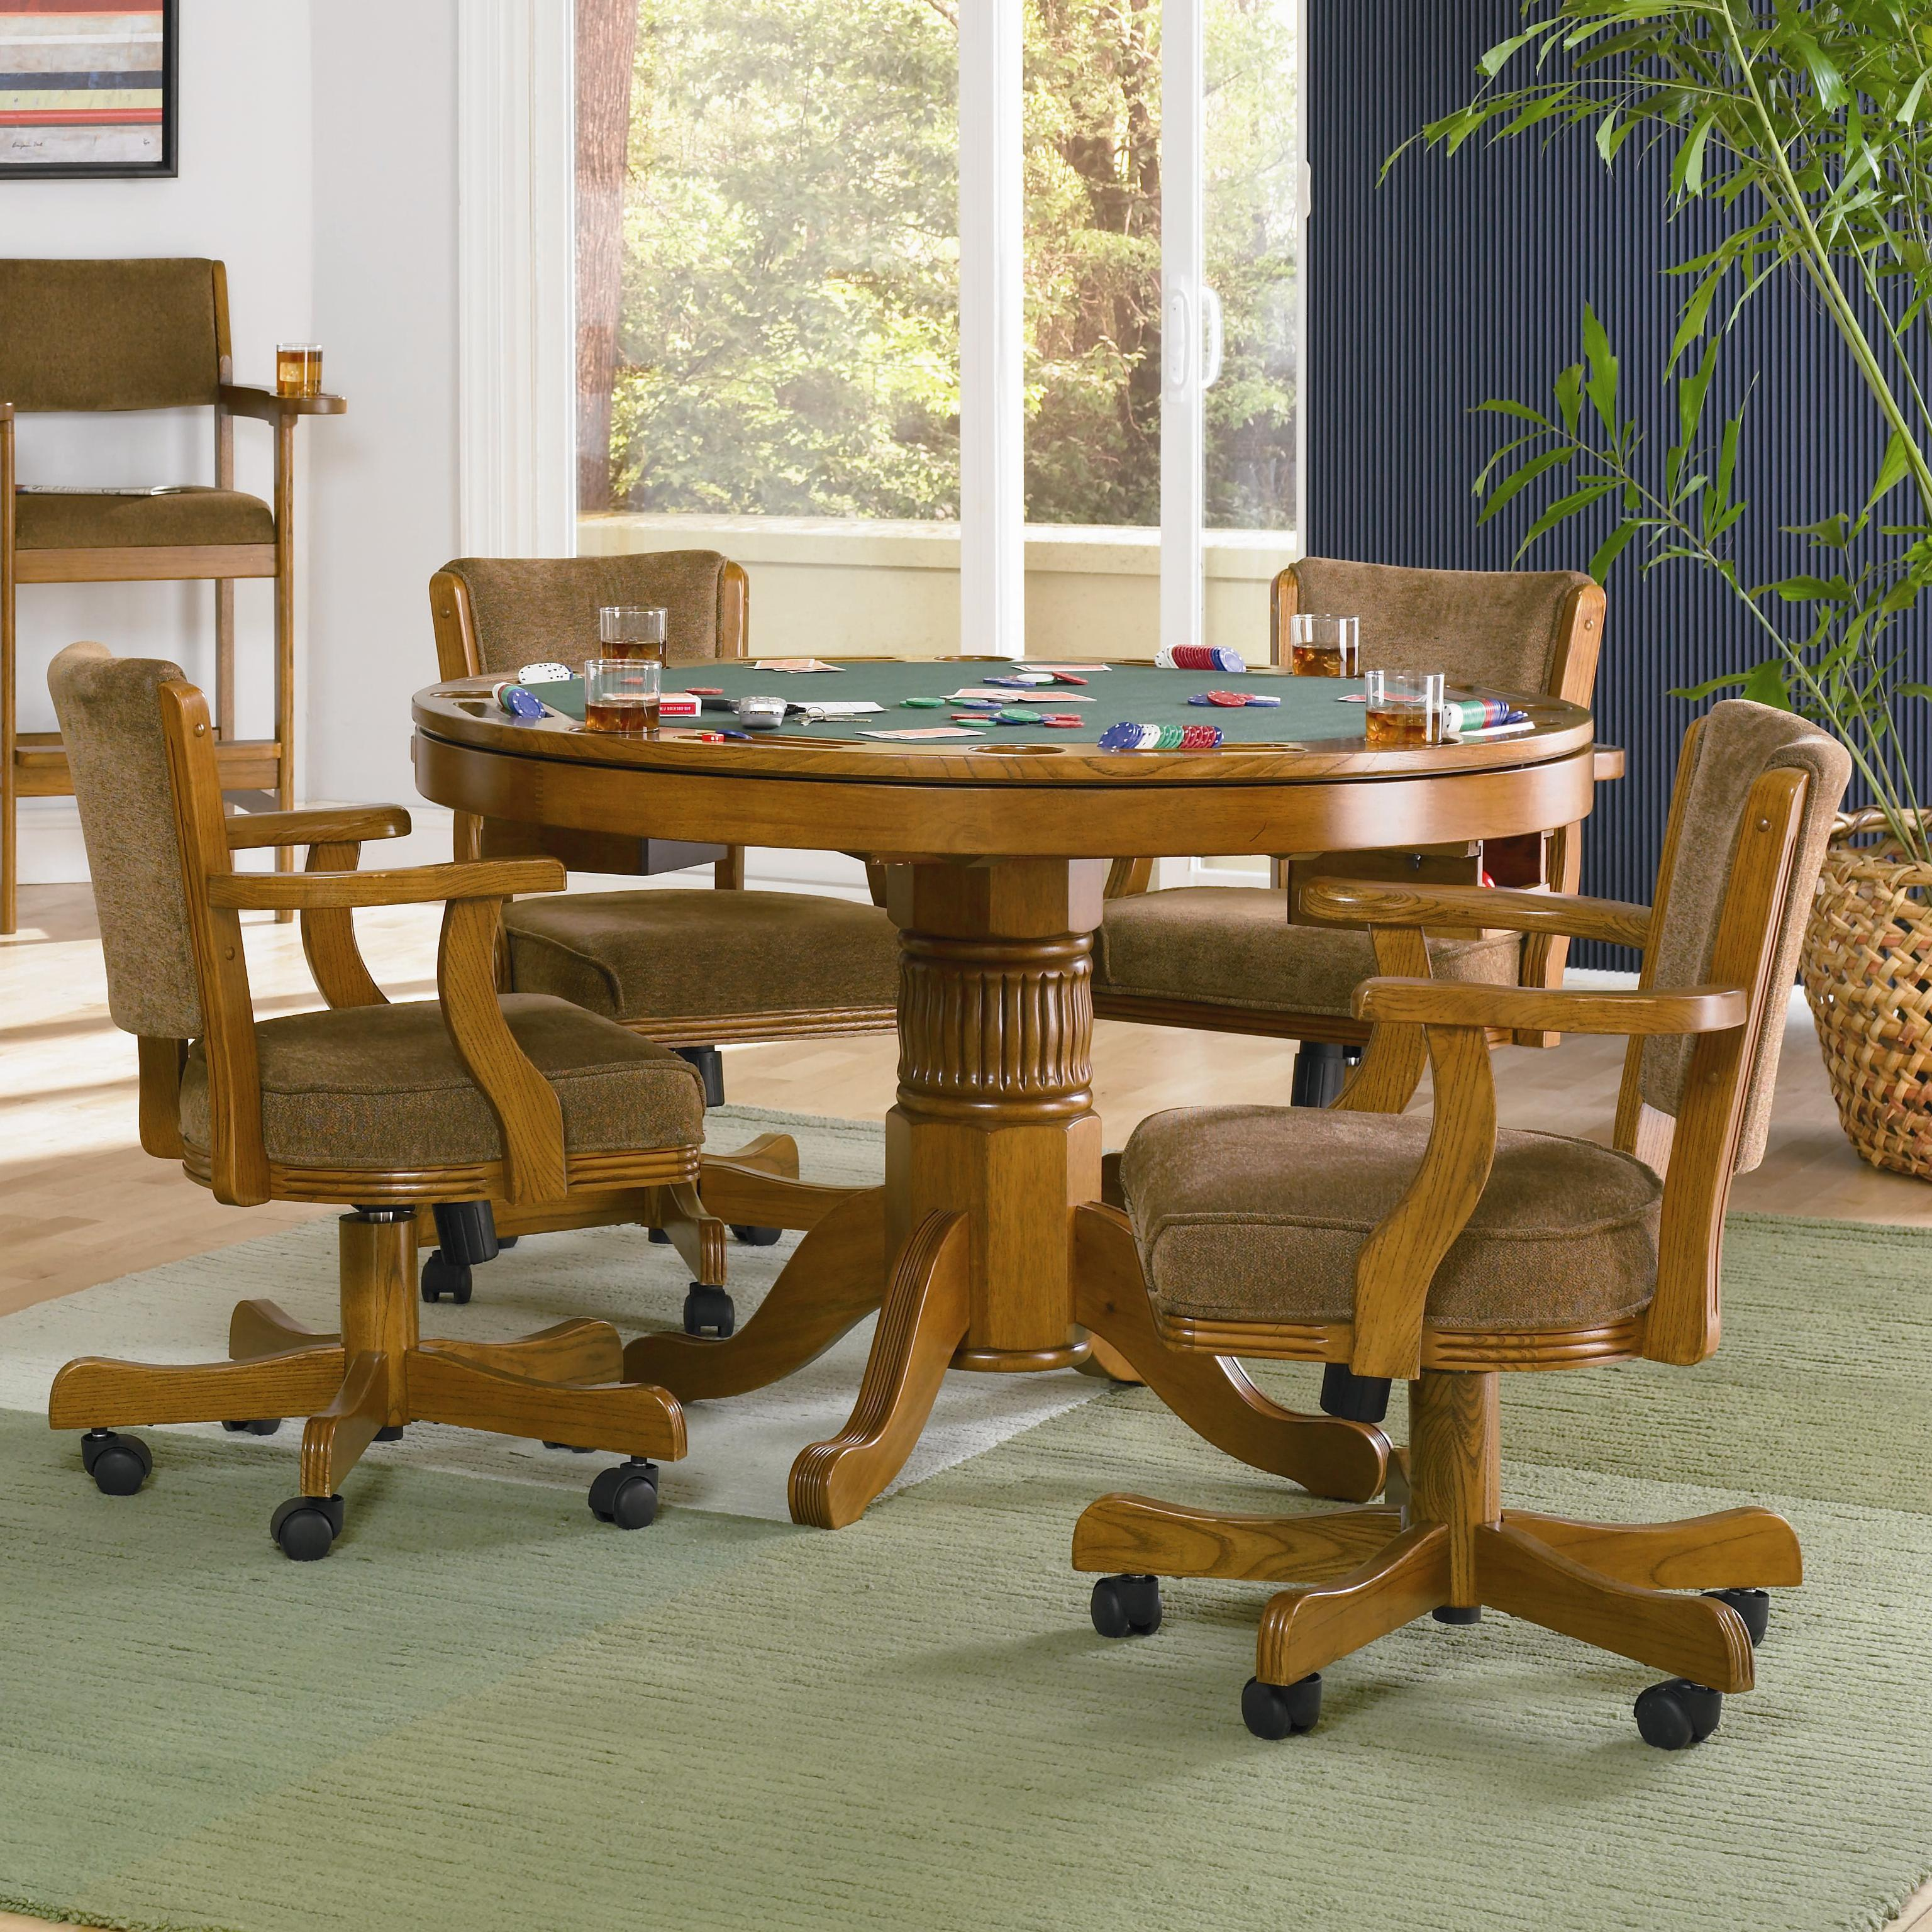 Mitchell 5 Piece Game Table Set by Coaster at Carolina Direct